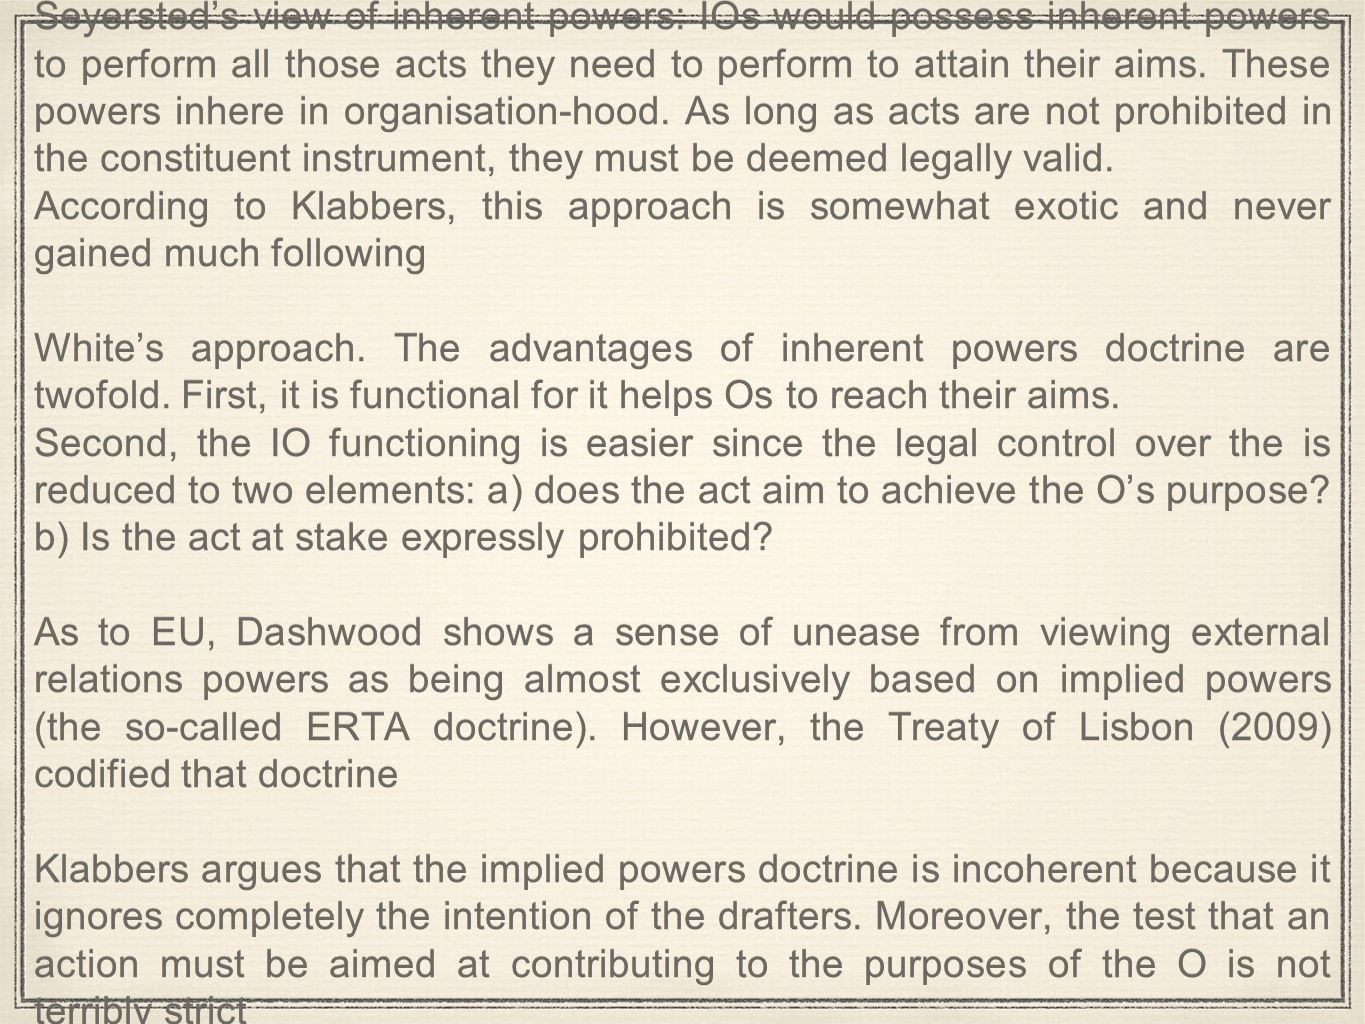 Seyersted's view of inherent powers: IOs would possess inherent powers to perform all those acts they need to perform to attain their aims.